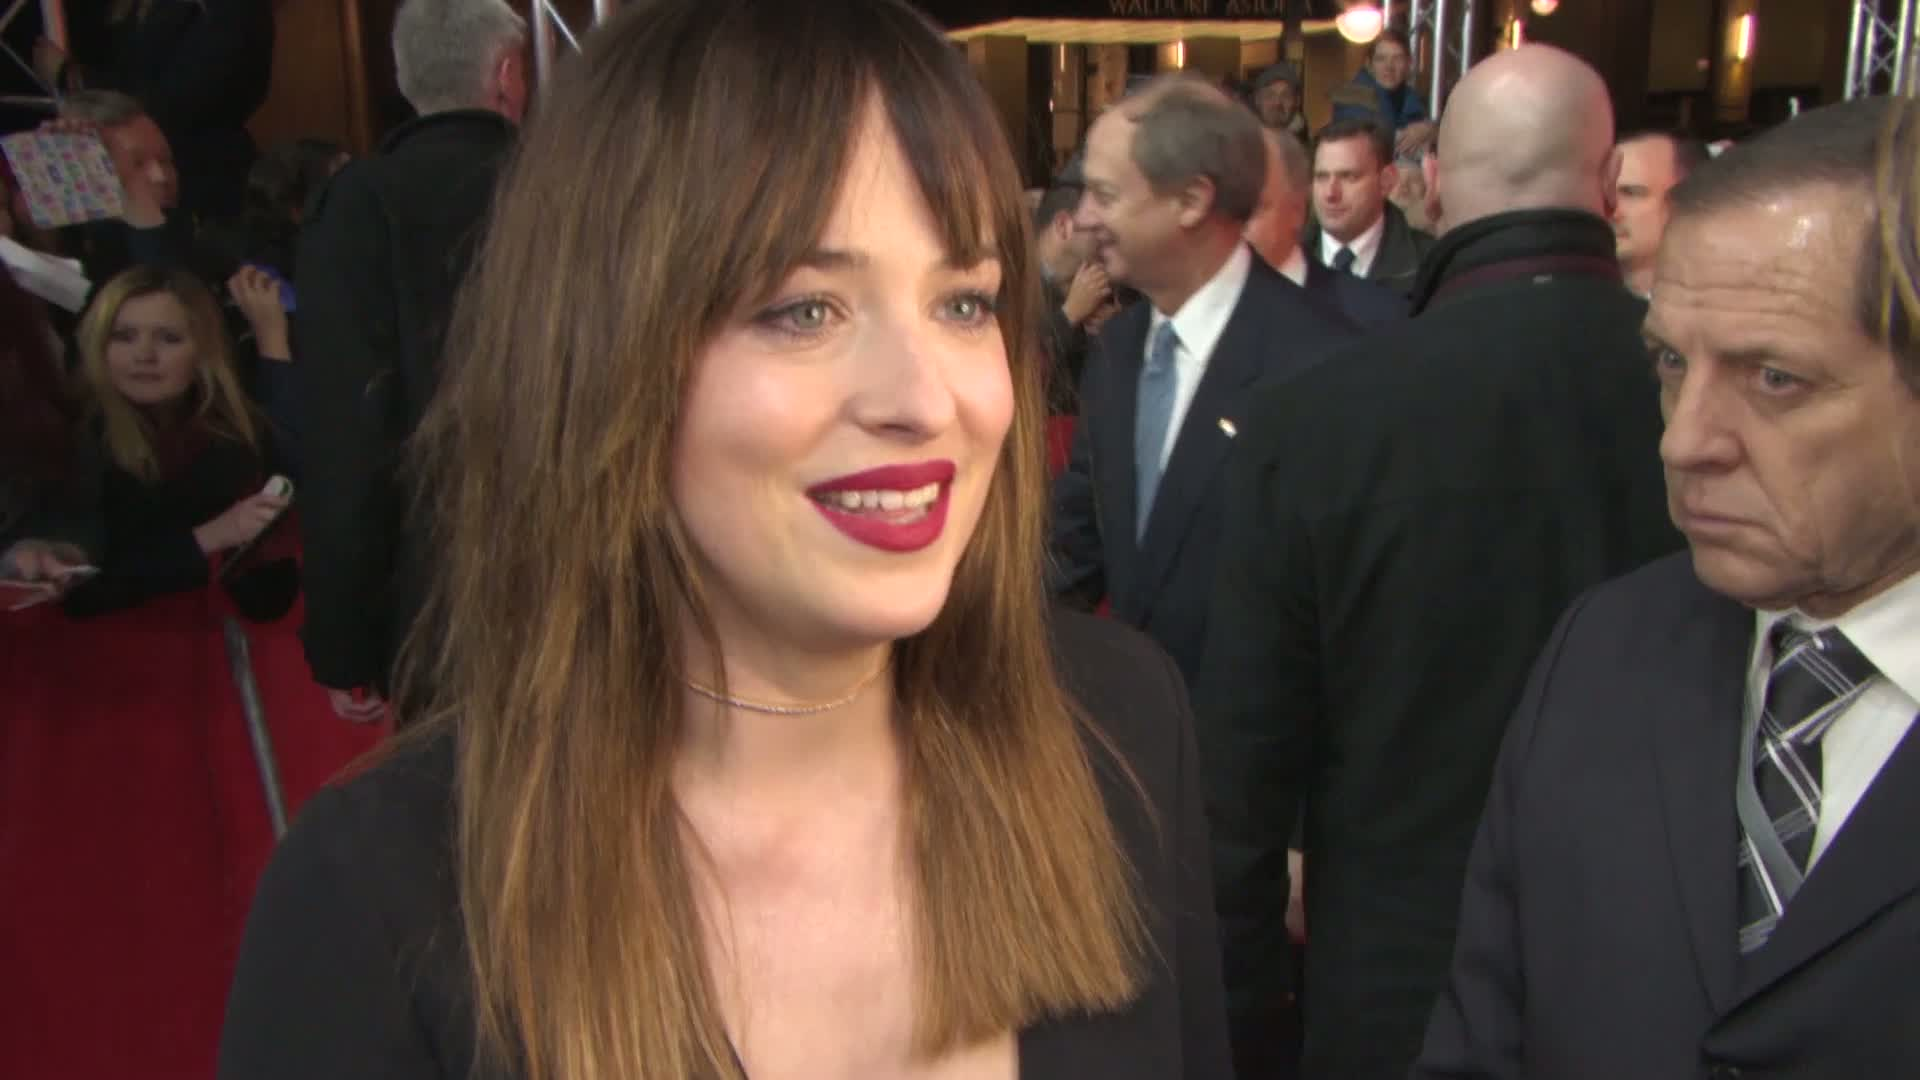 Berlinale 2015: Premiere 50 Shades of Grey